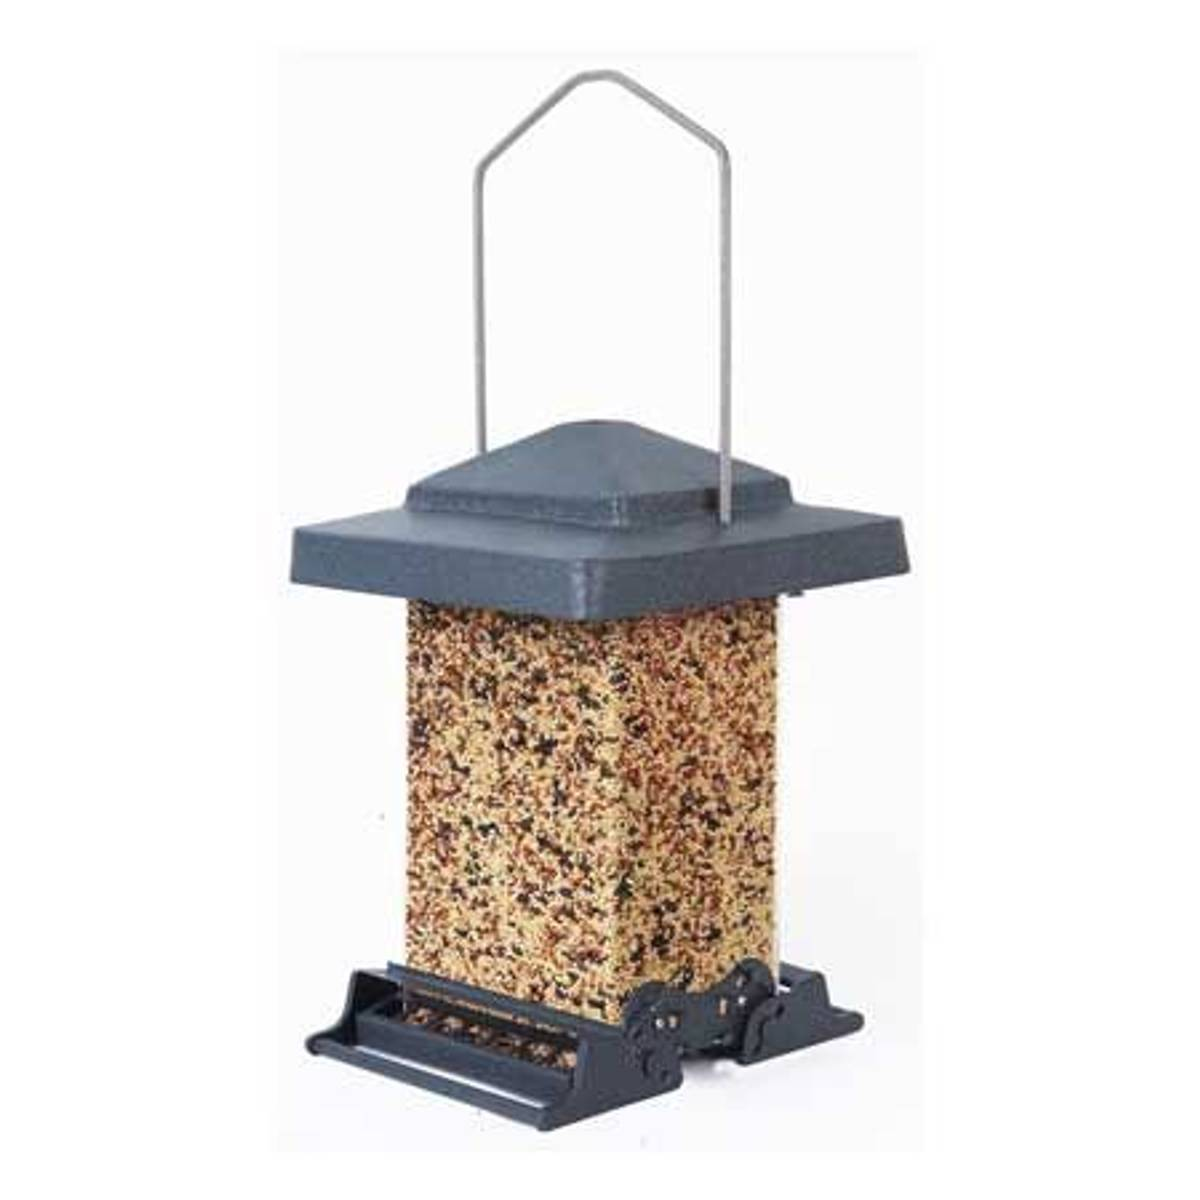 wood listing homemade il bird feeder zoom feeders gazebo amish fullxfull large spindle